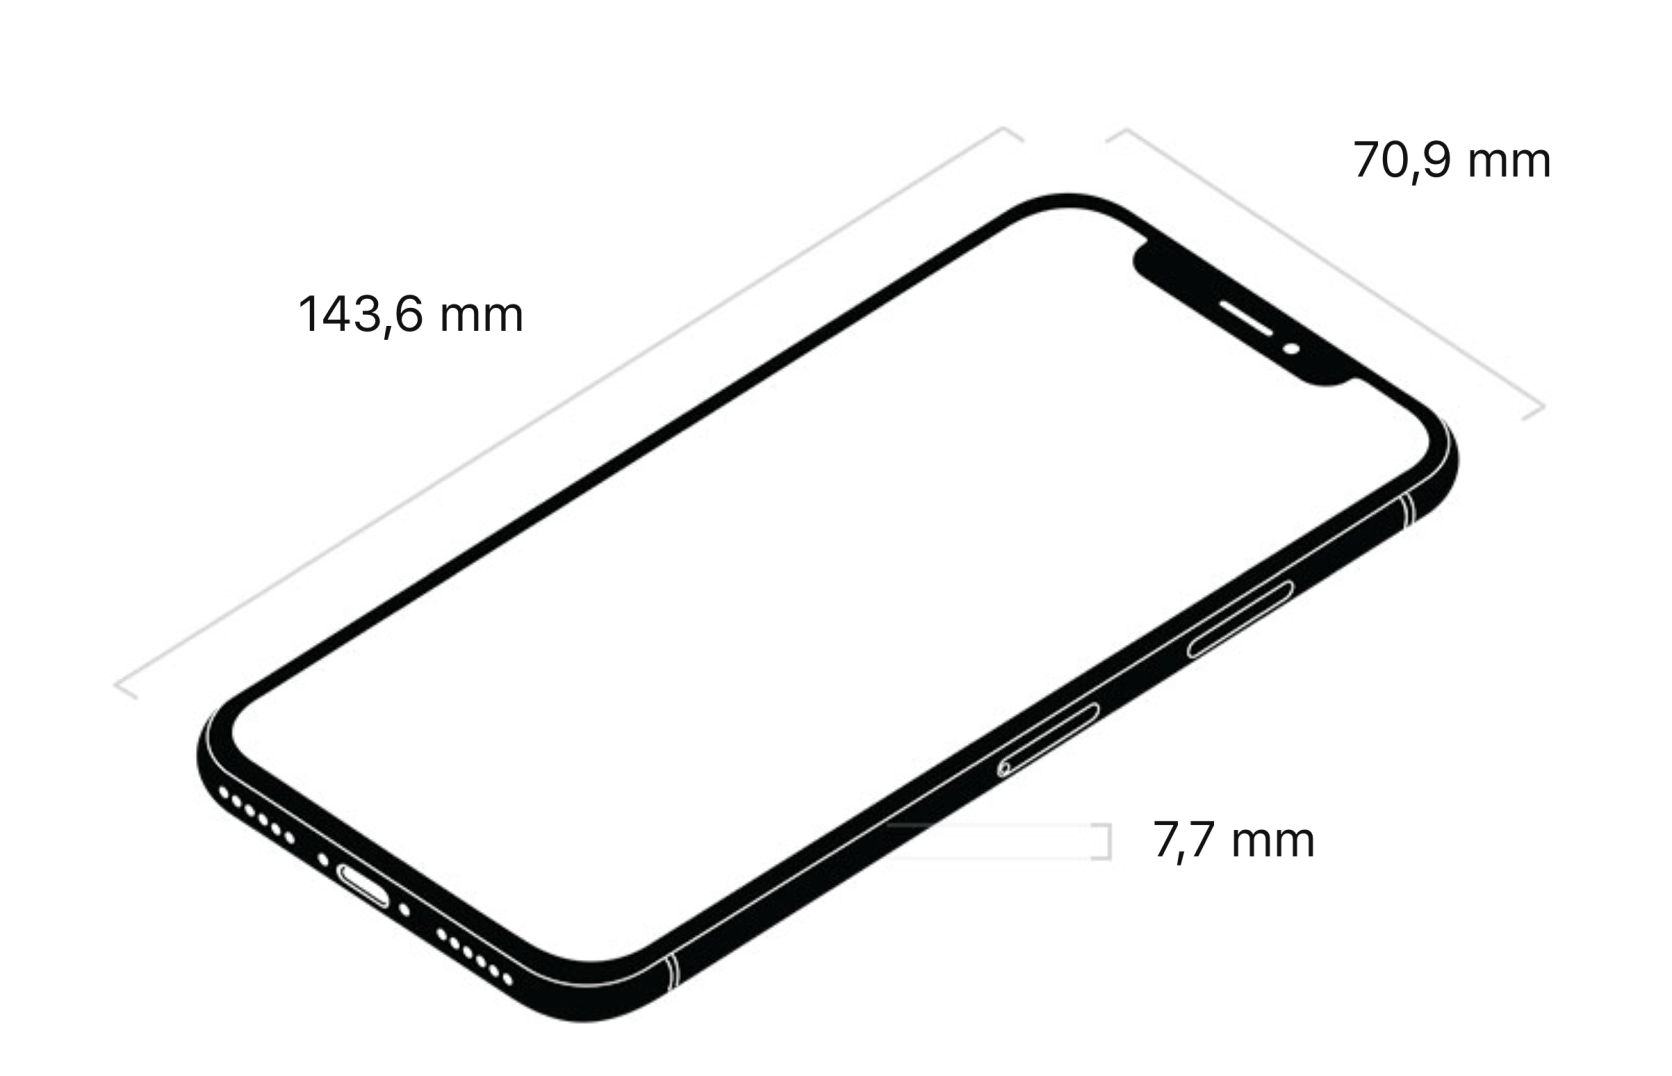 20170912 iPhone X dimensions | francois-remi.fr